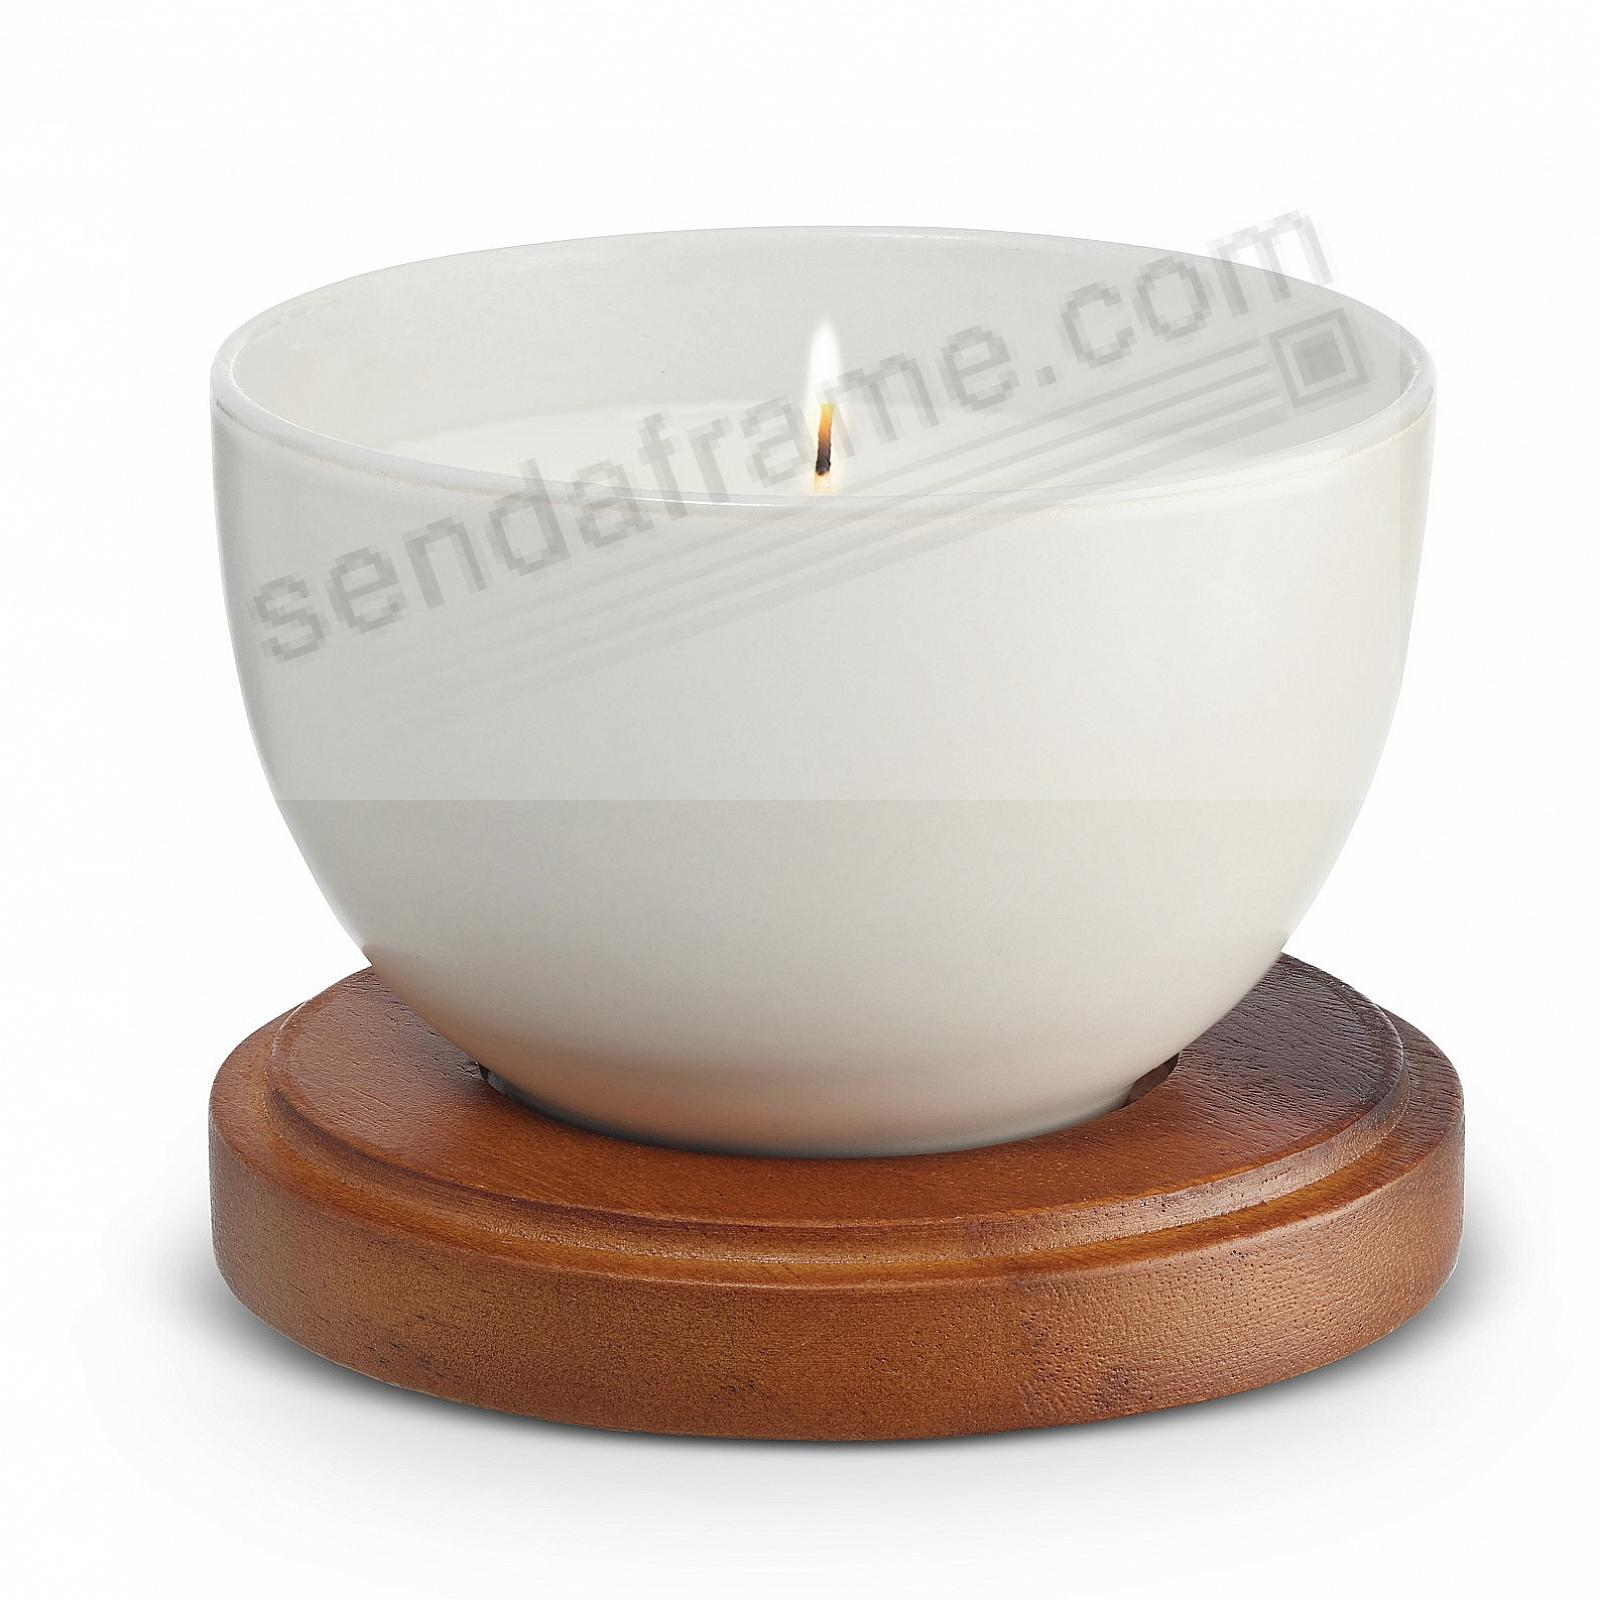 STARRY WHITE Prism Candle with Lid by Nambe®